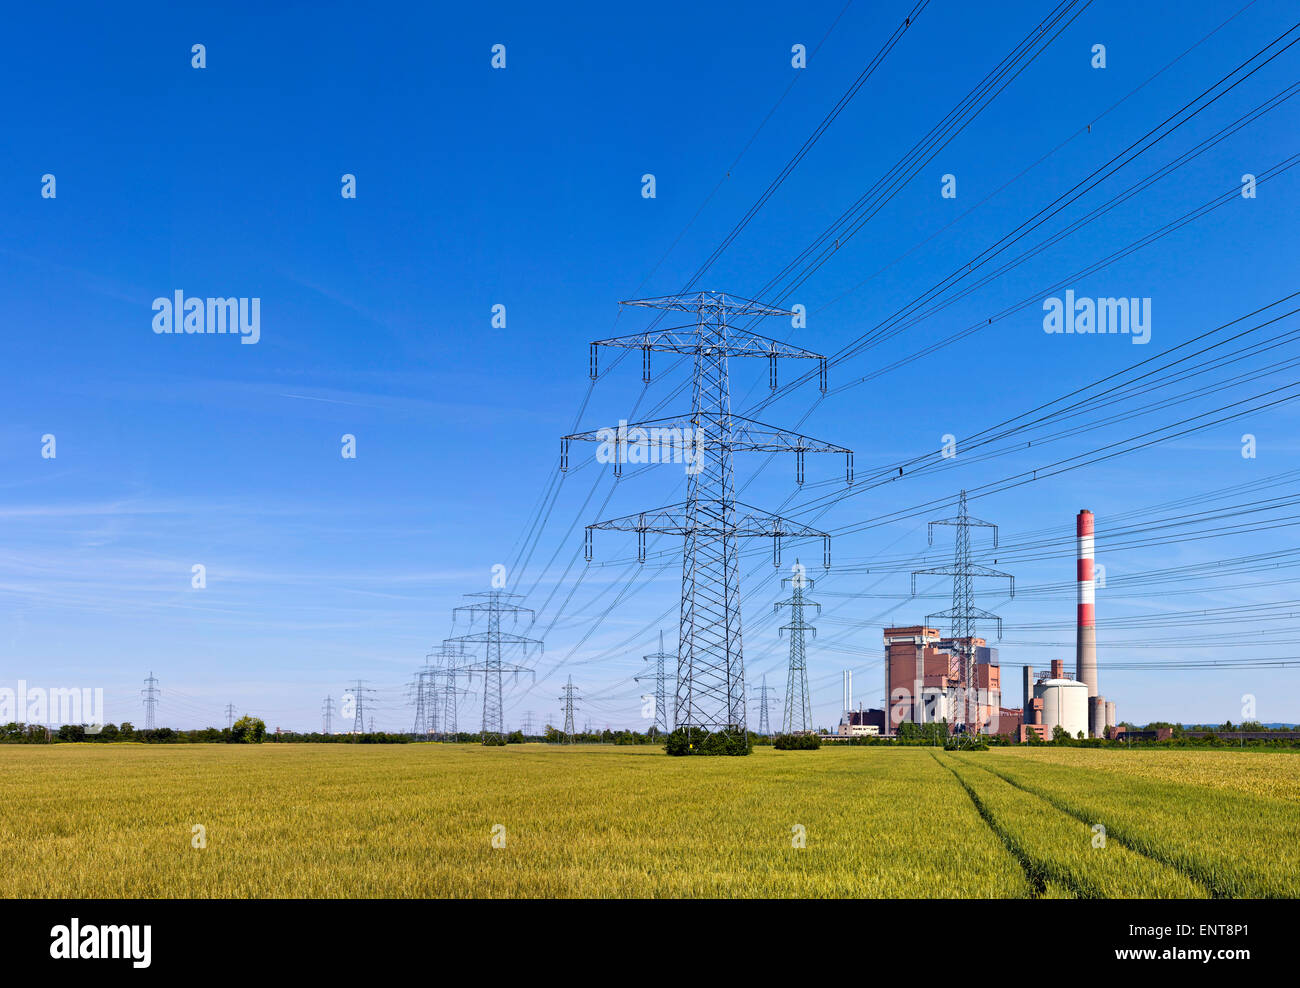 Electricity pylons with power a station in the middle of a agricultural field - track in the field leading towards. - Stock Image